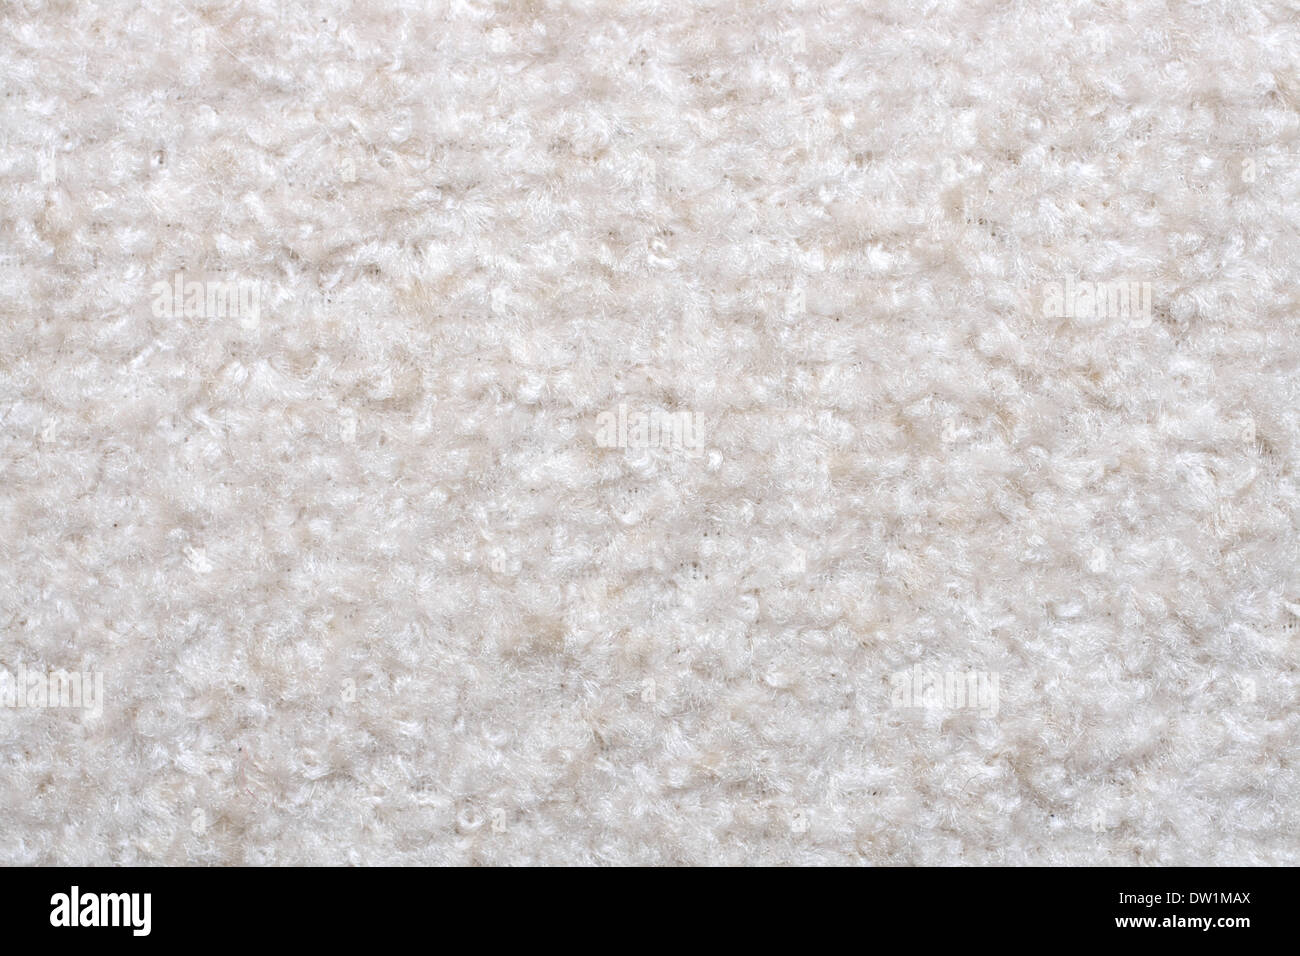 white wool fabric texture - Stock Image